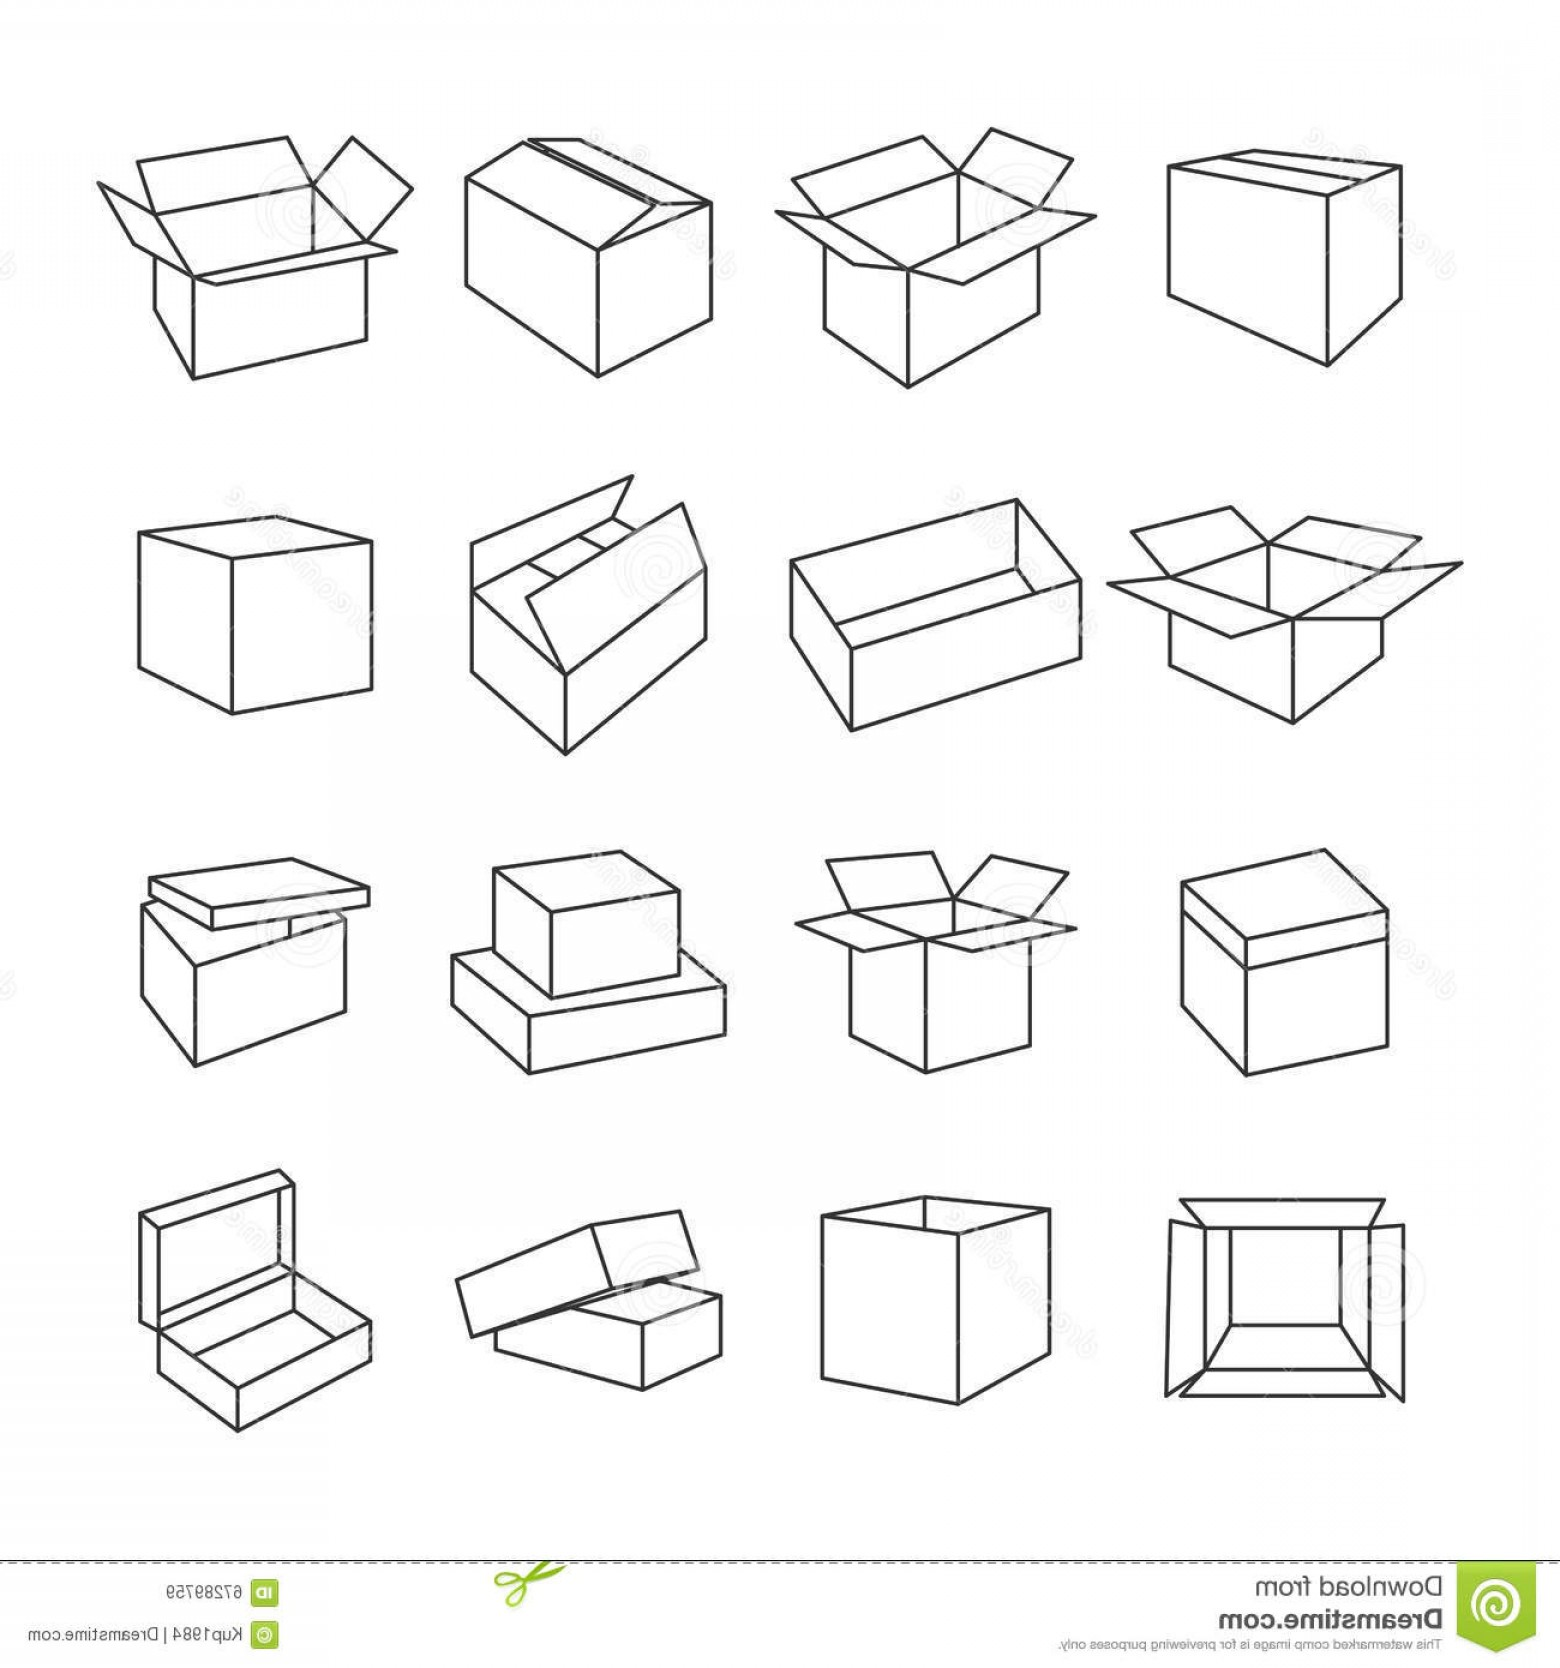 Box Outline Vector: Stock Illustration Icons Box Vector Illustration Set Outline Icon Thin Lines Image